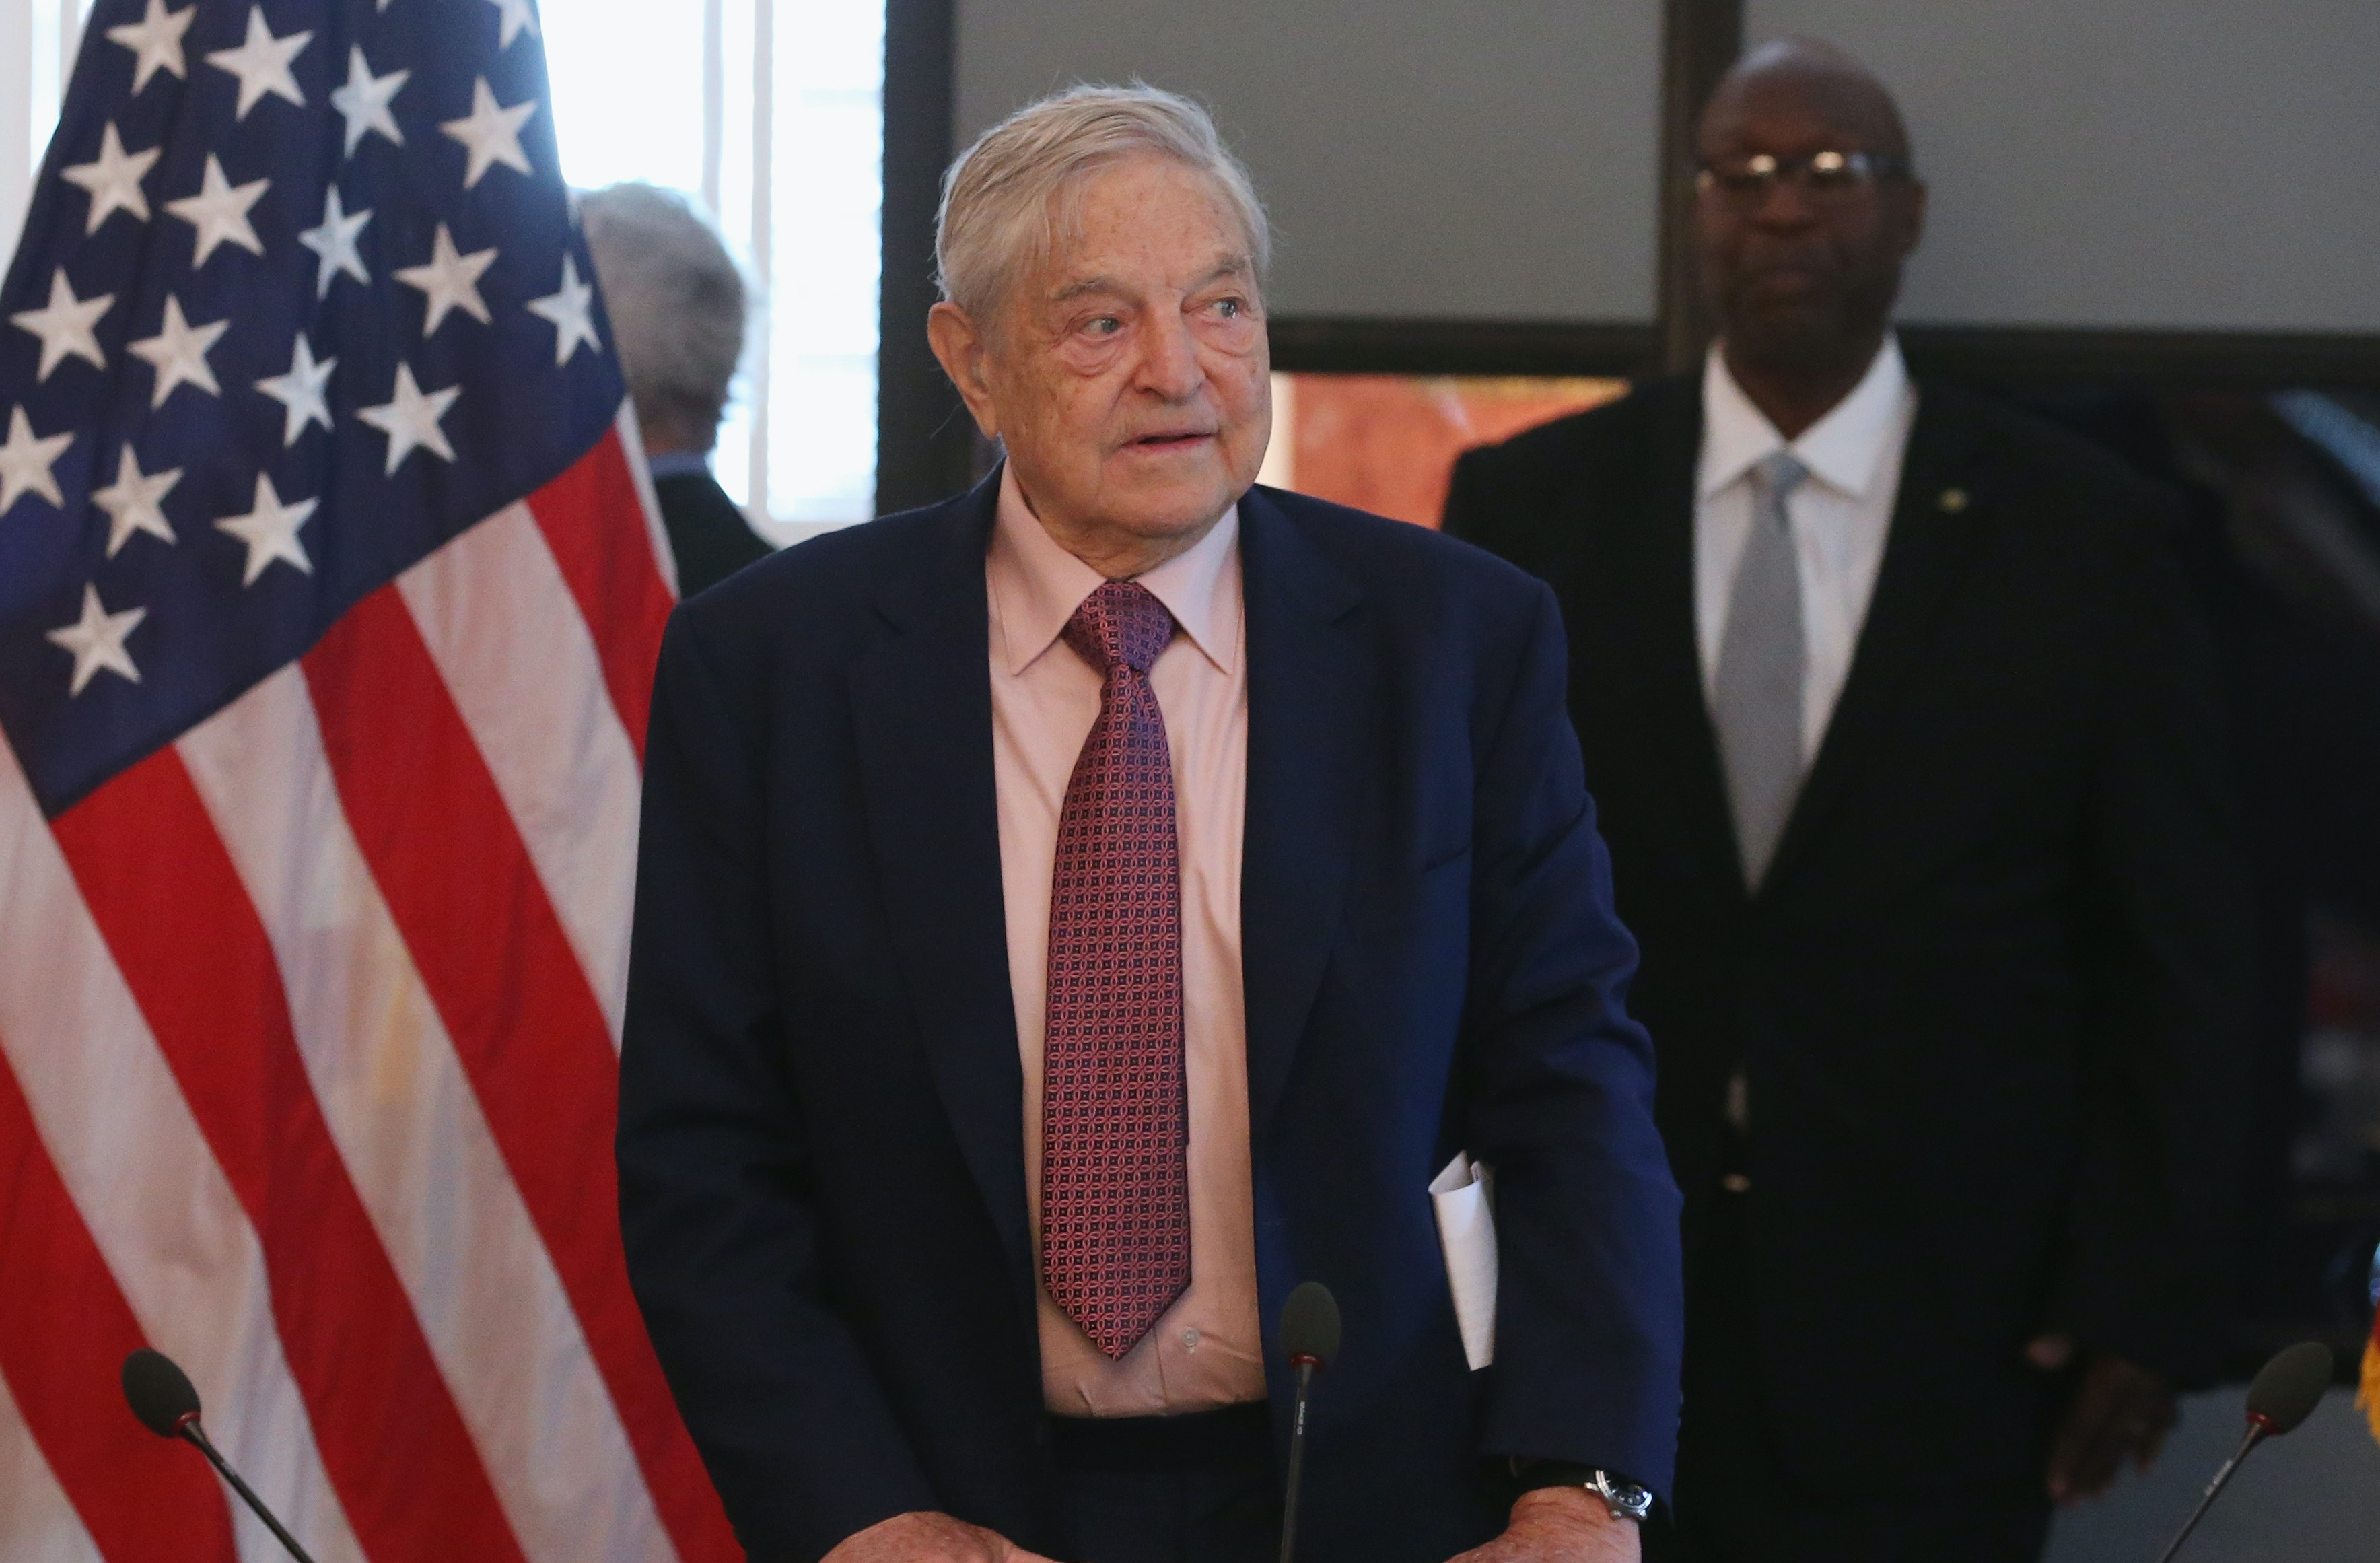 Billionaire George Soros attends a discussion with Commerce Secretary Penny Pritzker and Tunisian President Beji Caid Essebsi and a group of American business leaders, at the Blair House May 20, 2015 in Washington, DC.